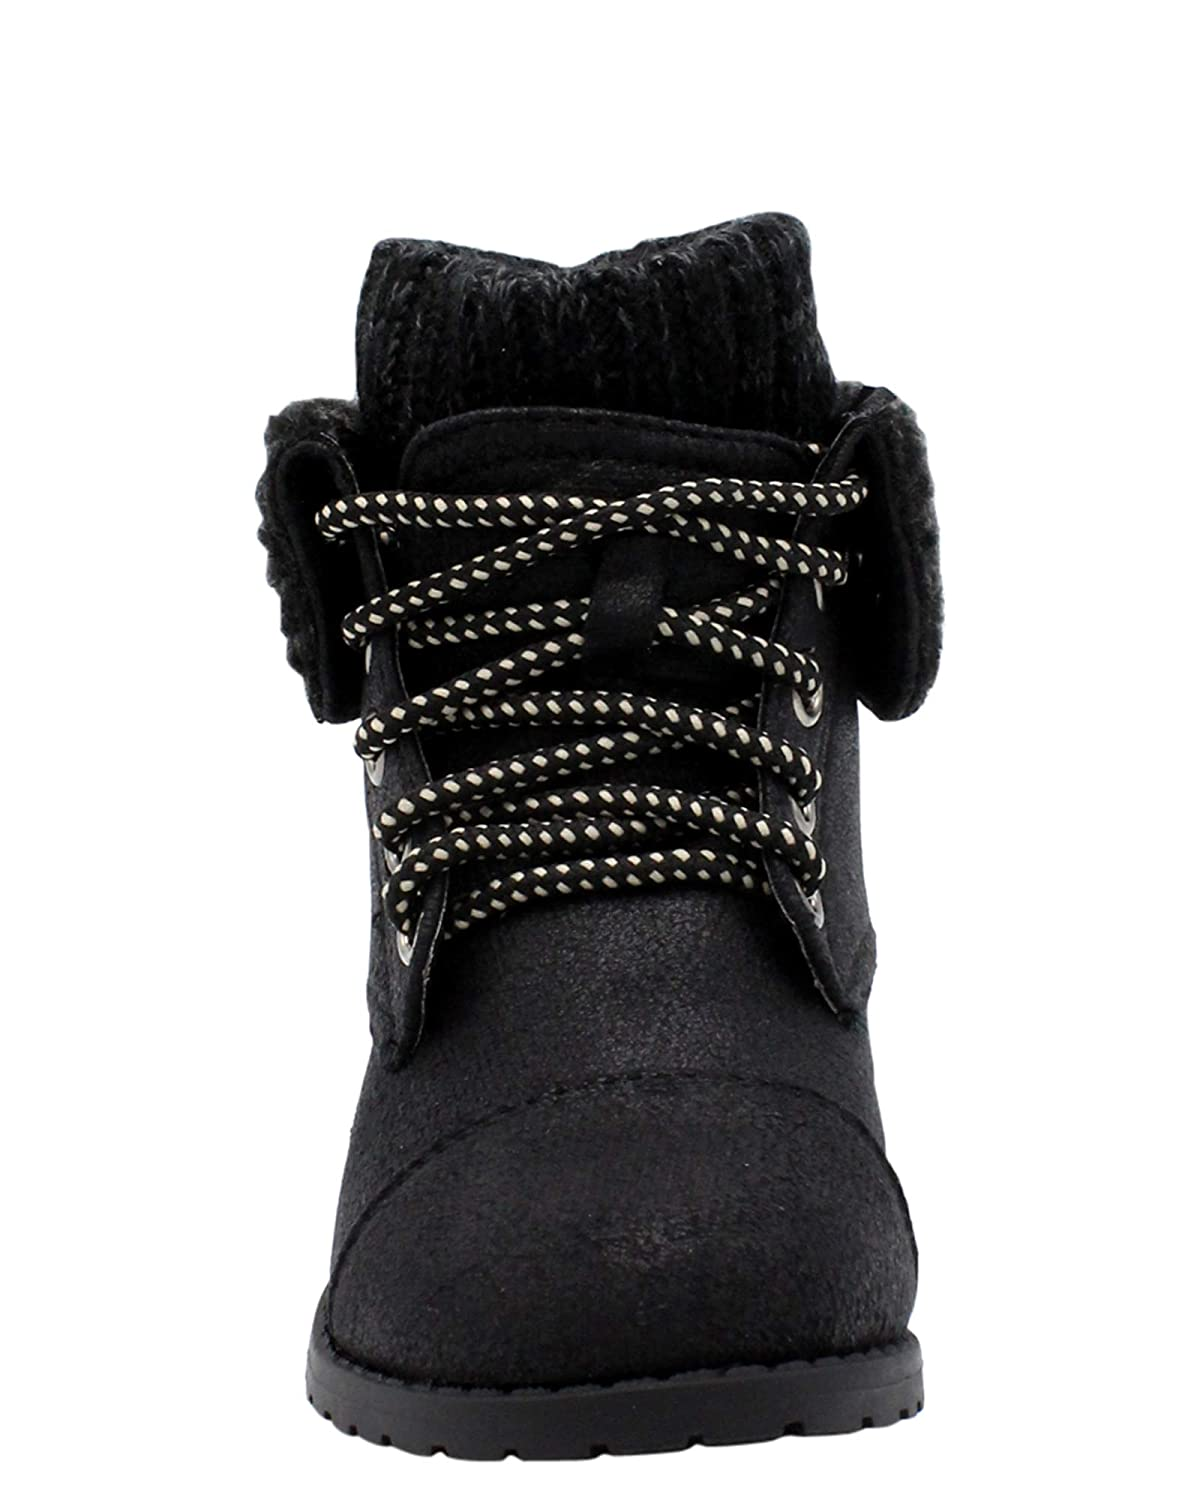 Link Girls Causal Lace Up Sweater Top Ankle Booties